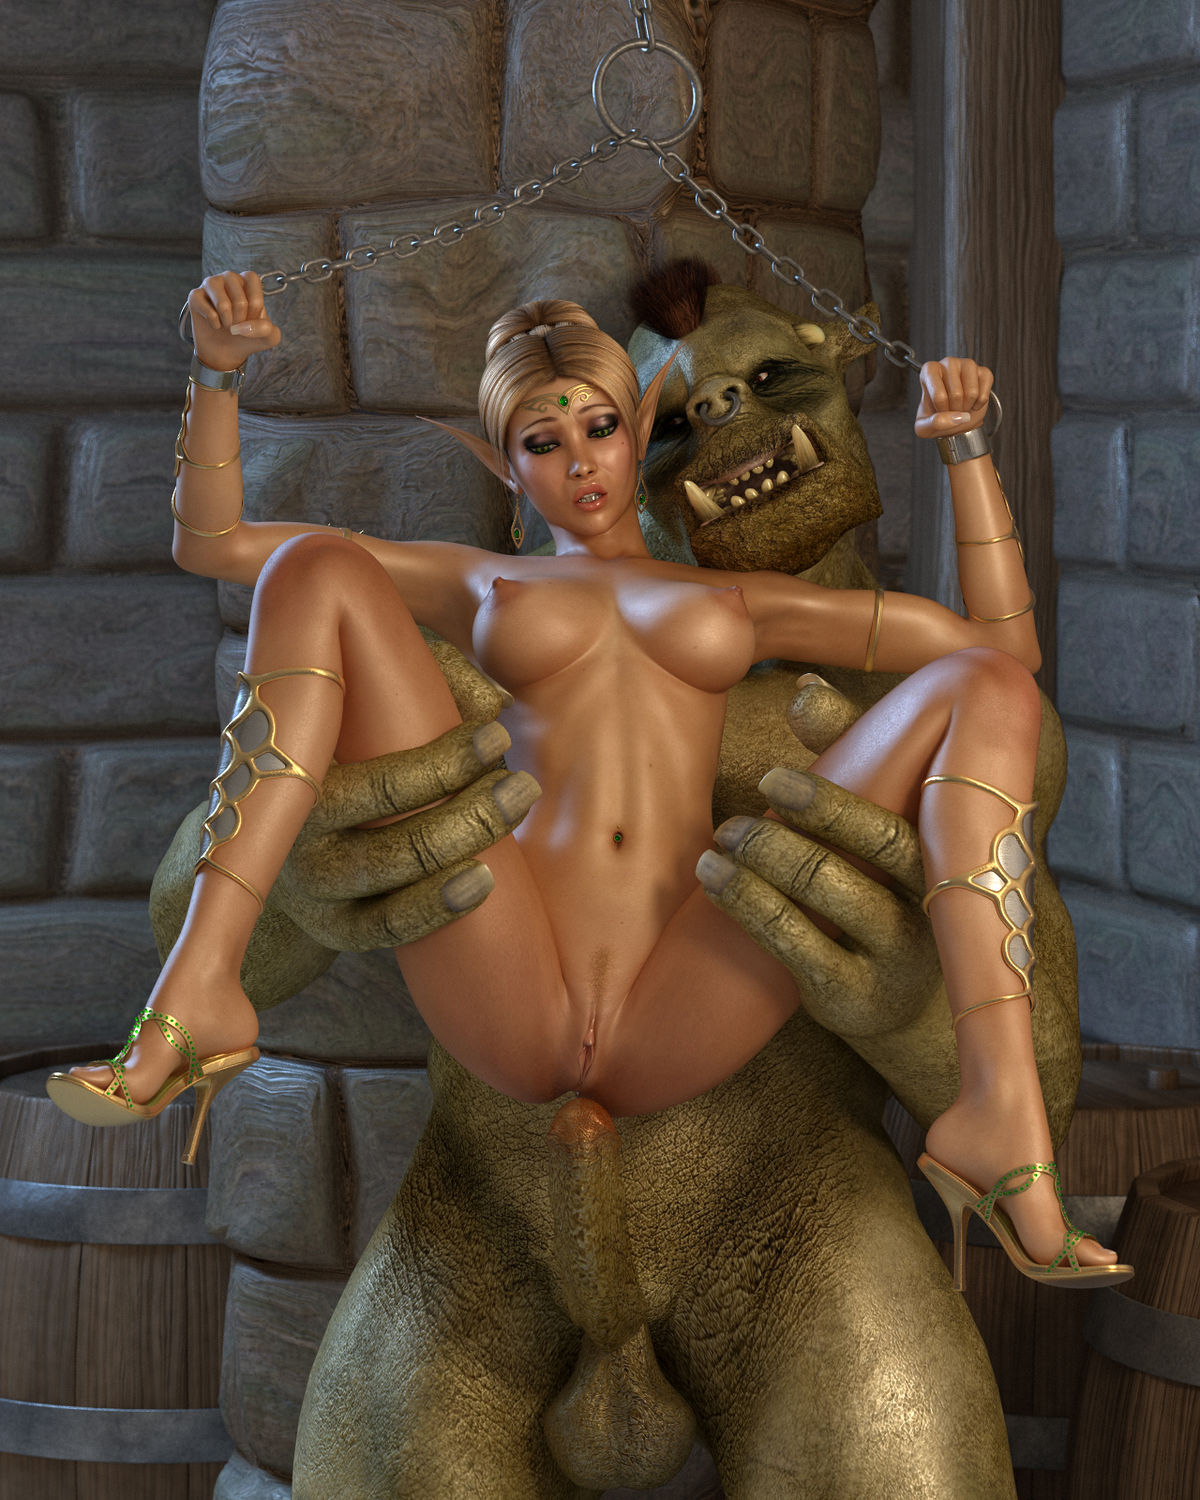 Ogre sex with elf exposed photo